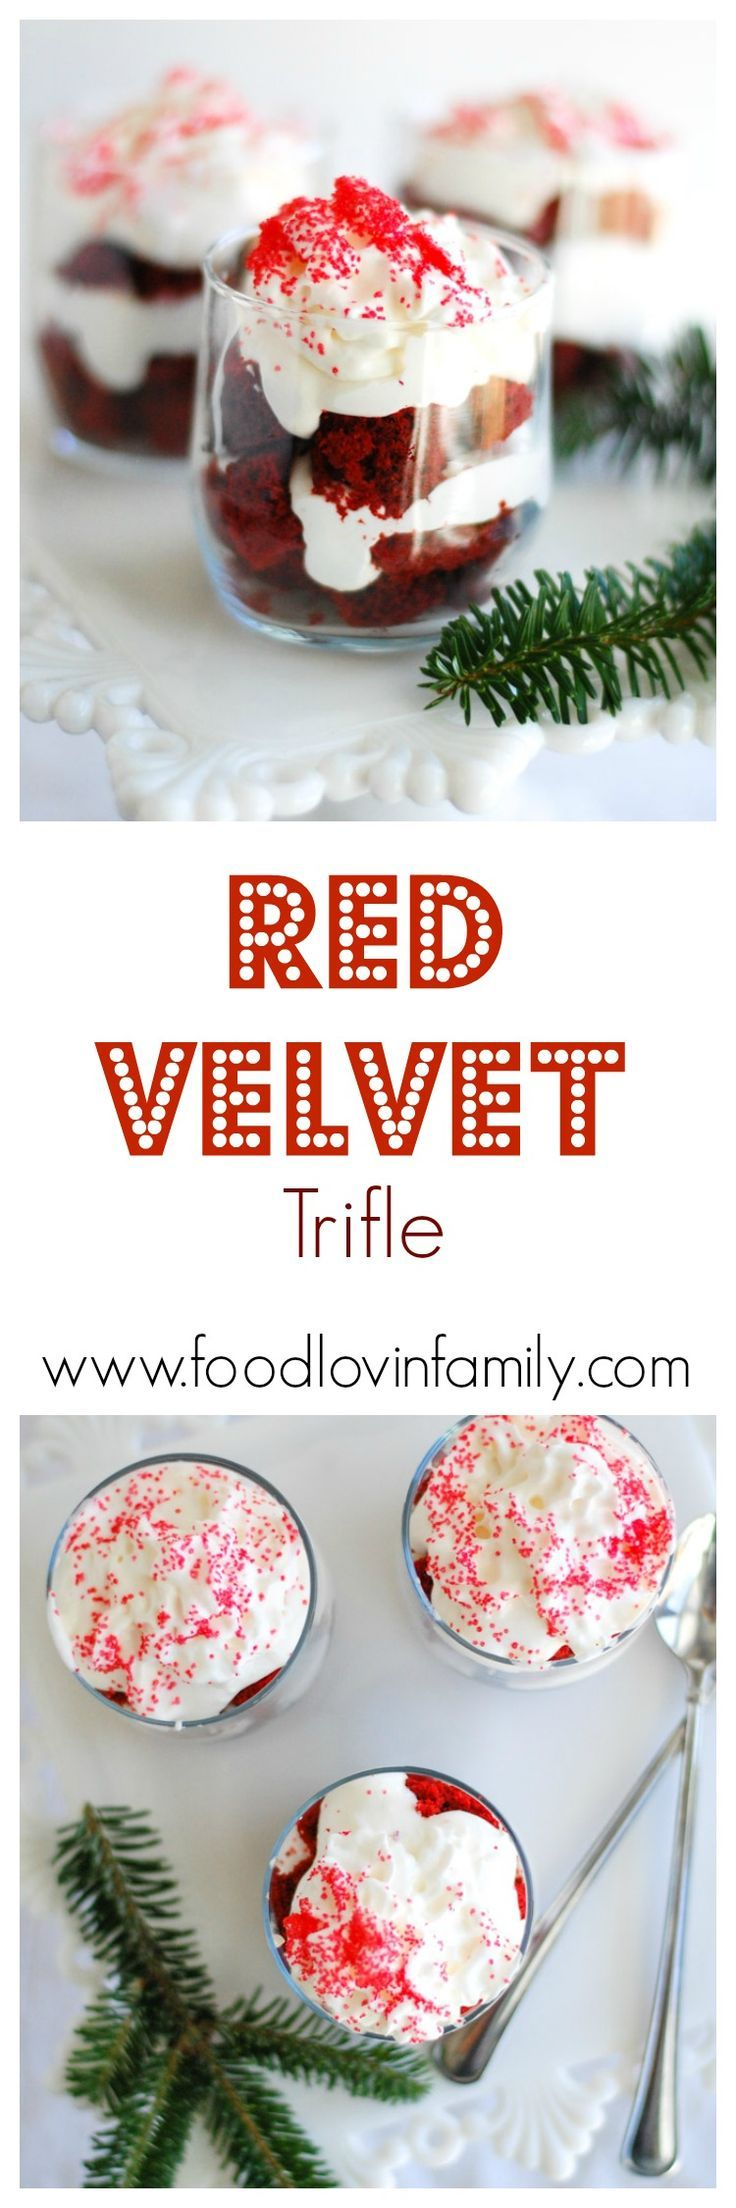 Red Velvet Trifle is made easy by using a cake mix, frozen whipped topping and cream cheese. A festive and delicious treat perfect for the holidays.| http://www.foodlovinfamily.com/red-velvet-trifle/